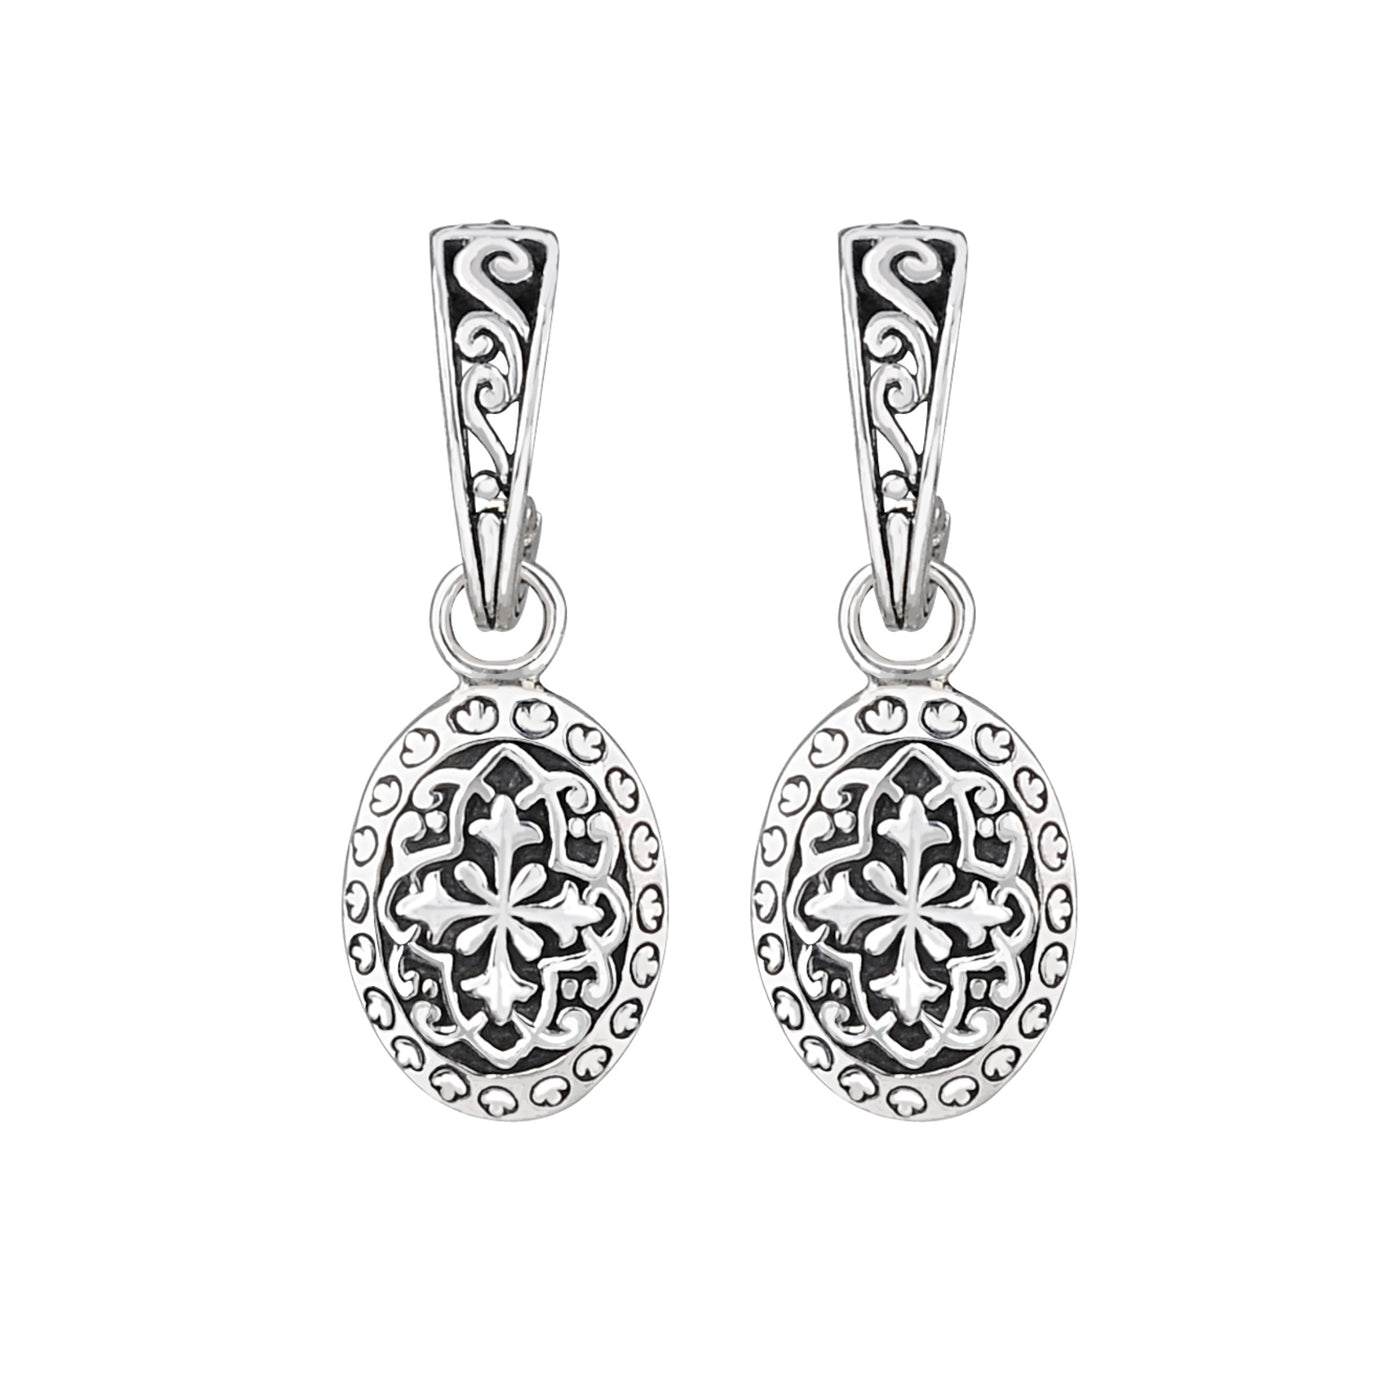 JD E64069 OVAL FILIGREE HOOP EARRINGS